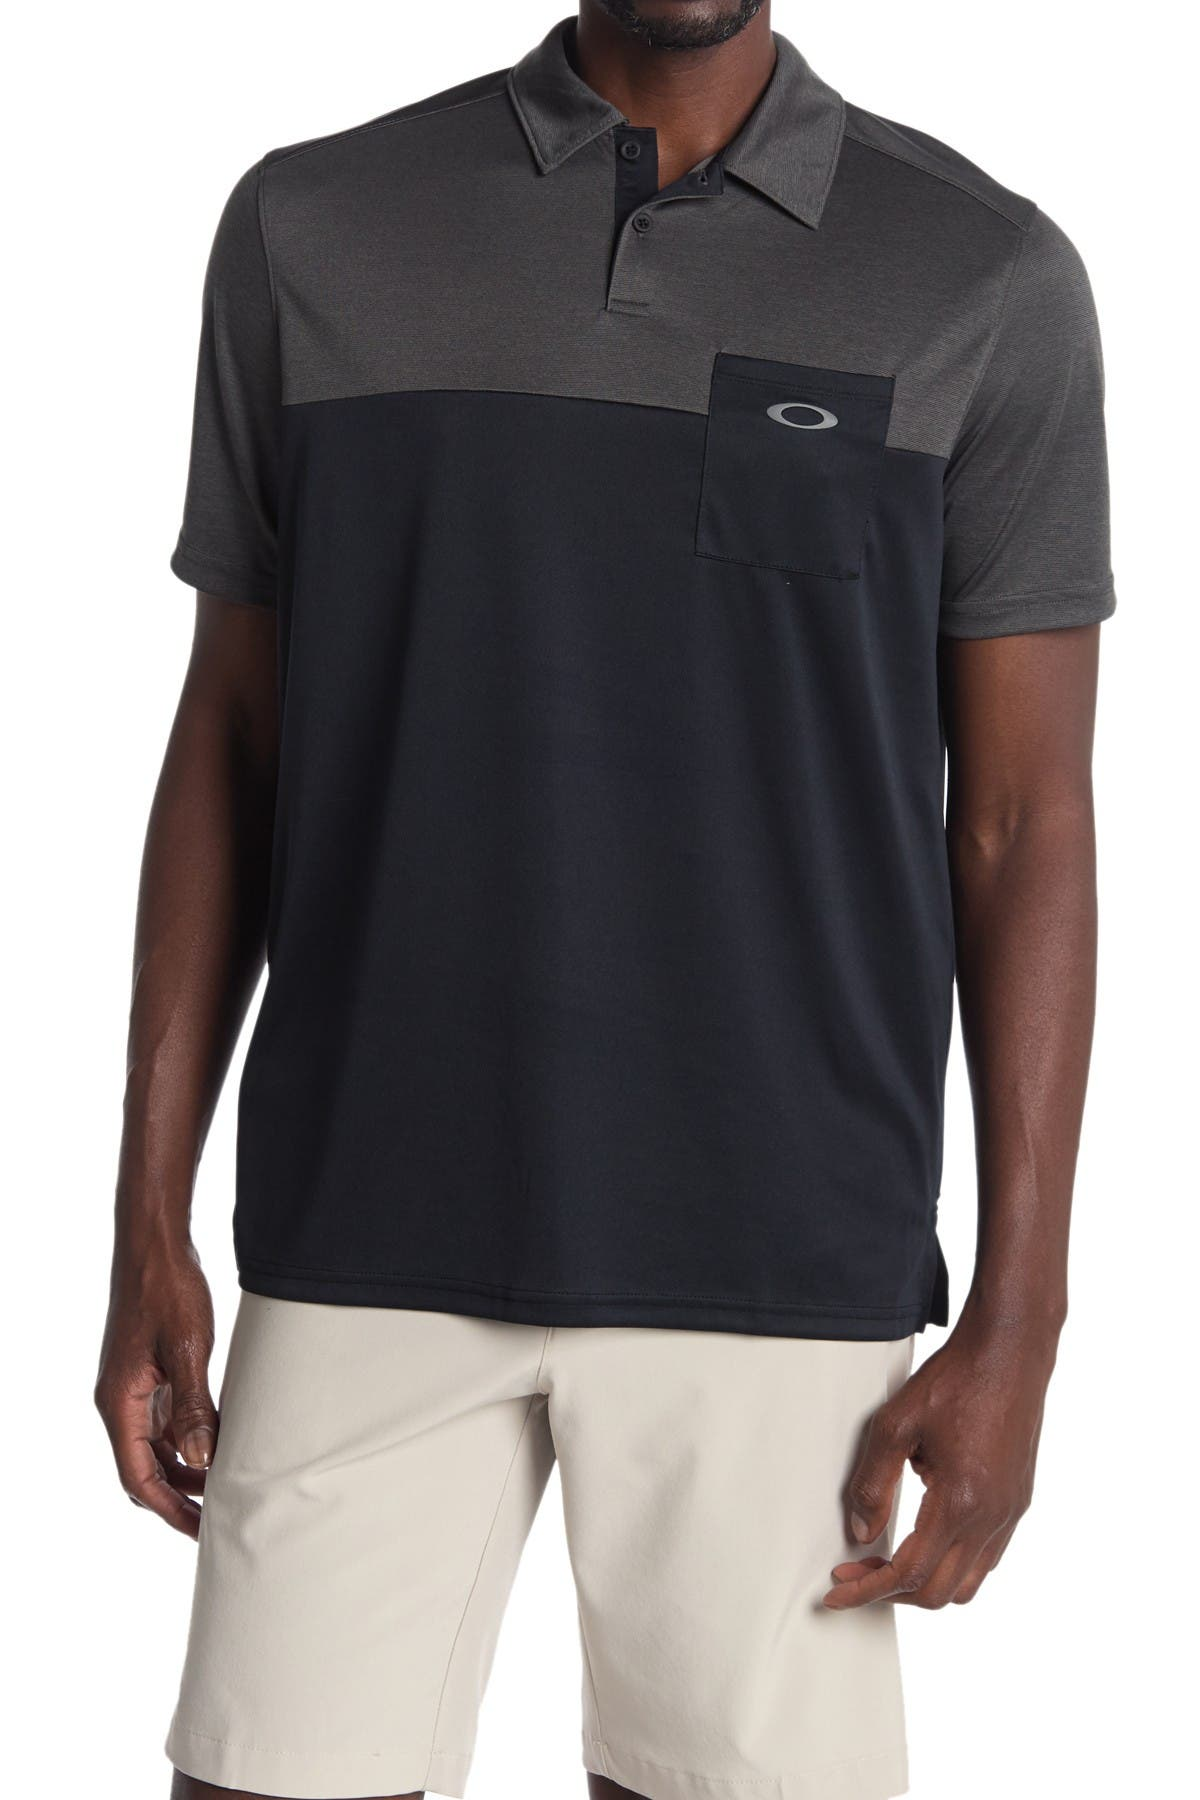 Image of Oakley Colorblock Gravity Polo